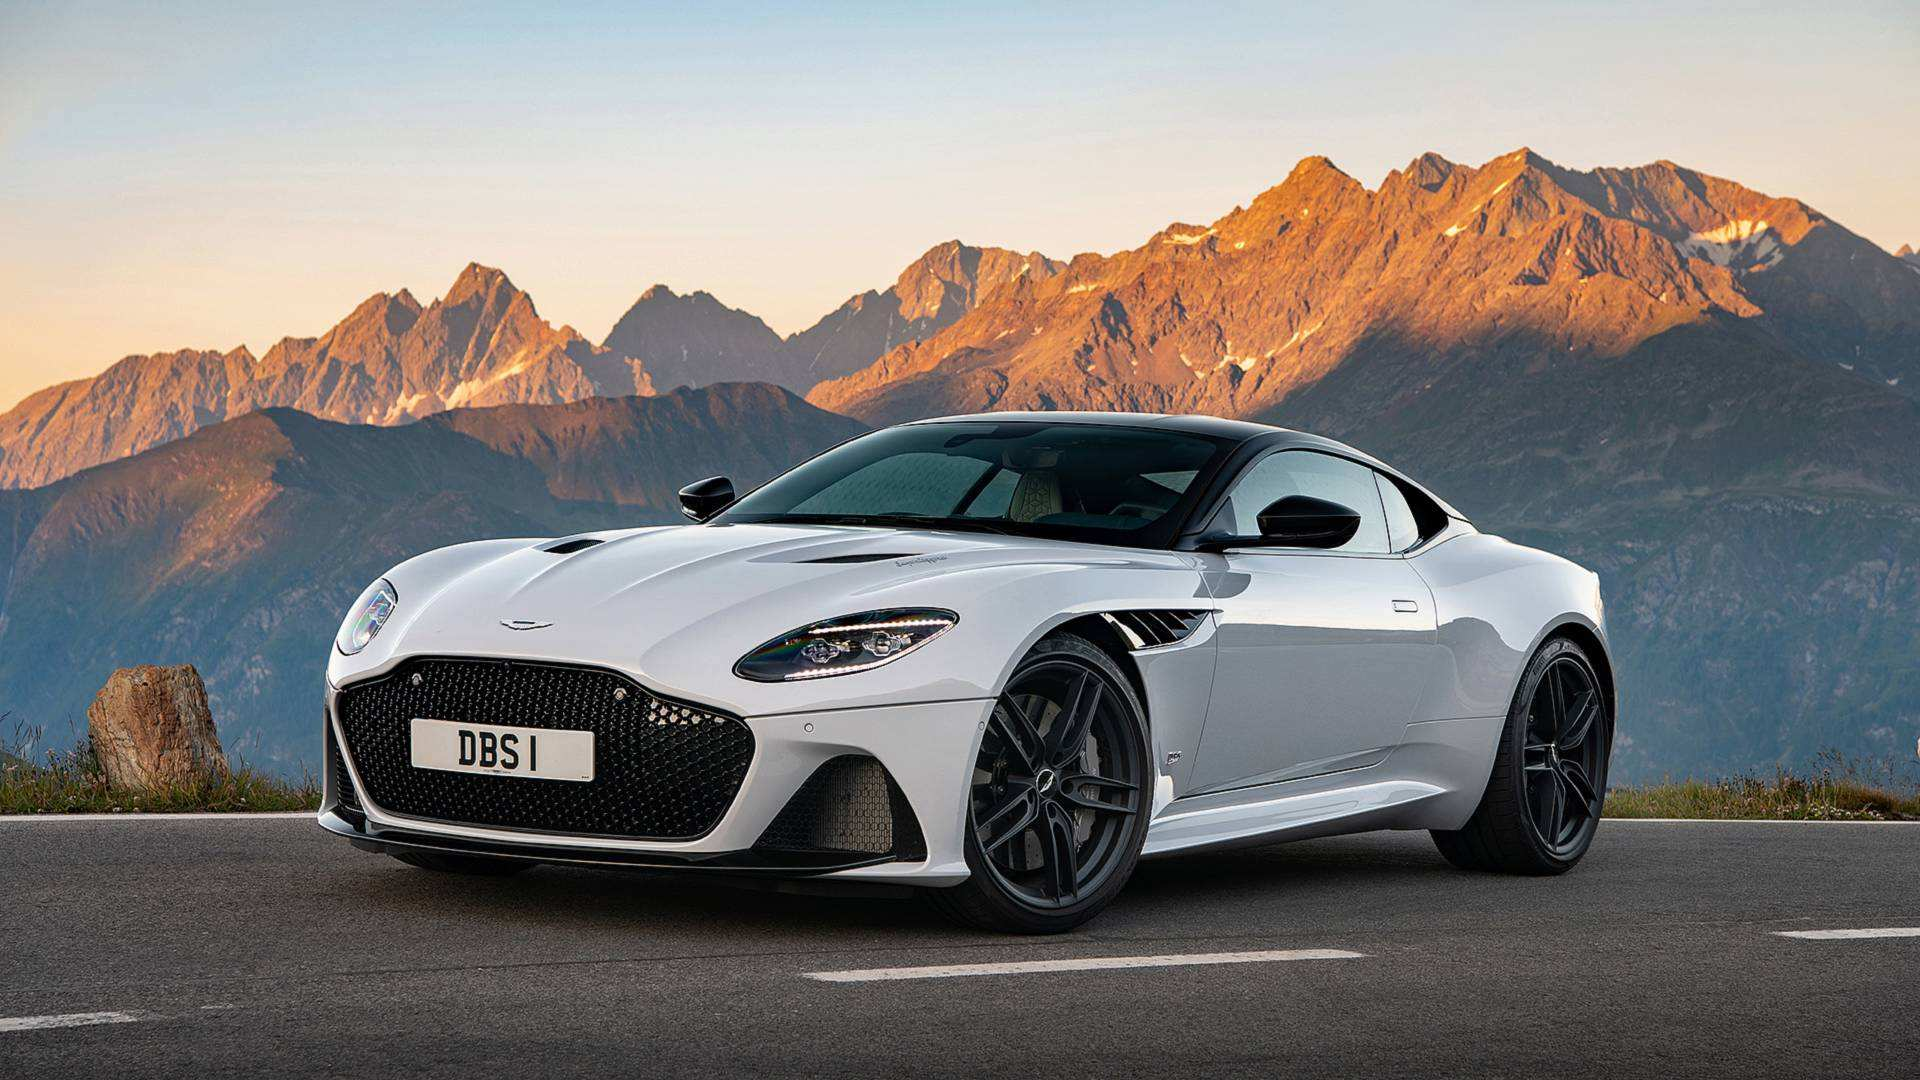 29 All New 2019 Aston Vantage Style for 2019 Aston Vantage